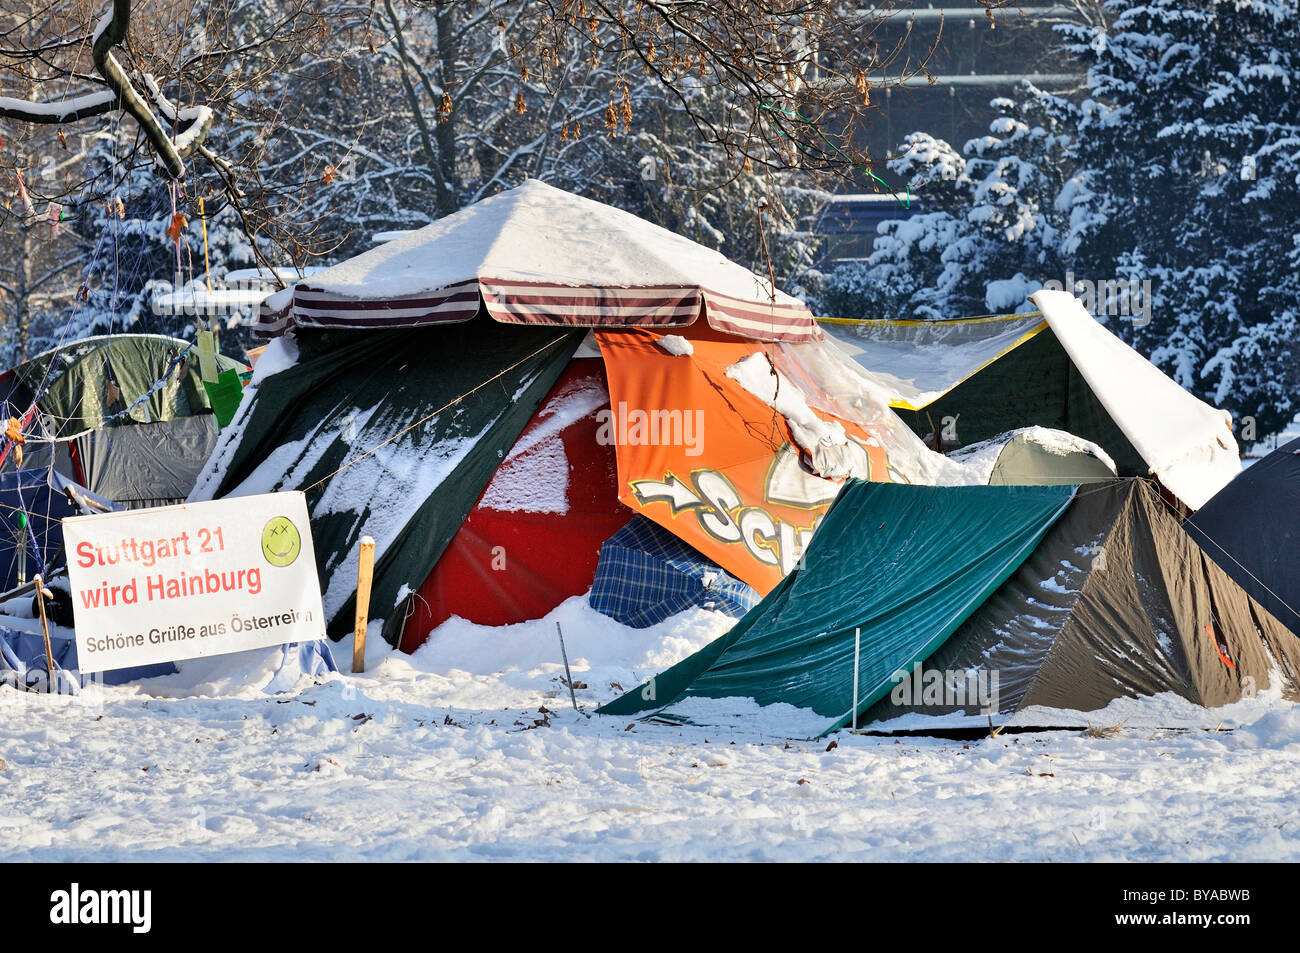 Protest against Stuttgart 21, a controversial urban development and transport project, tents, the Parkschuetzer - Stock Image